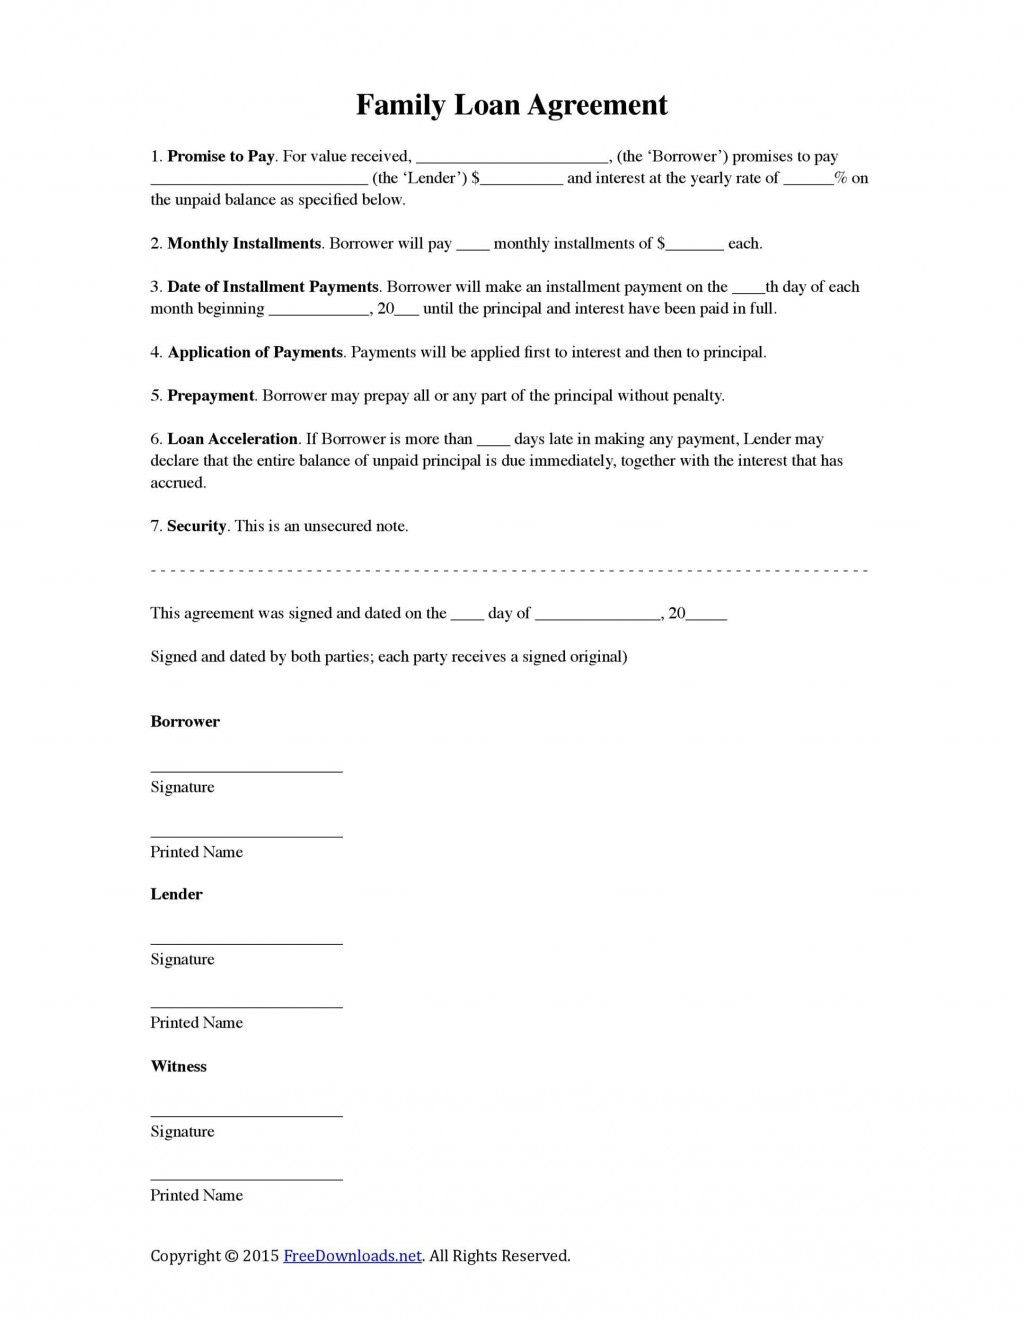 009 Stupendou Family Loan Agreement Template Uk Free High Definition Large